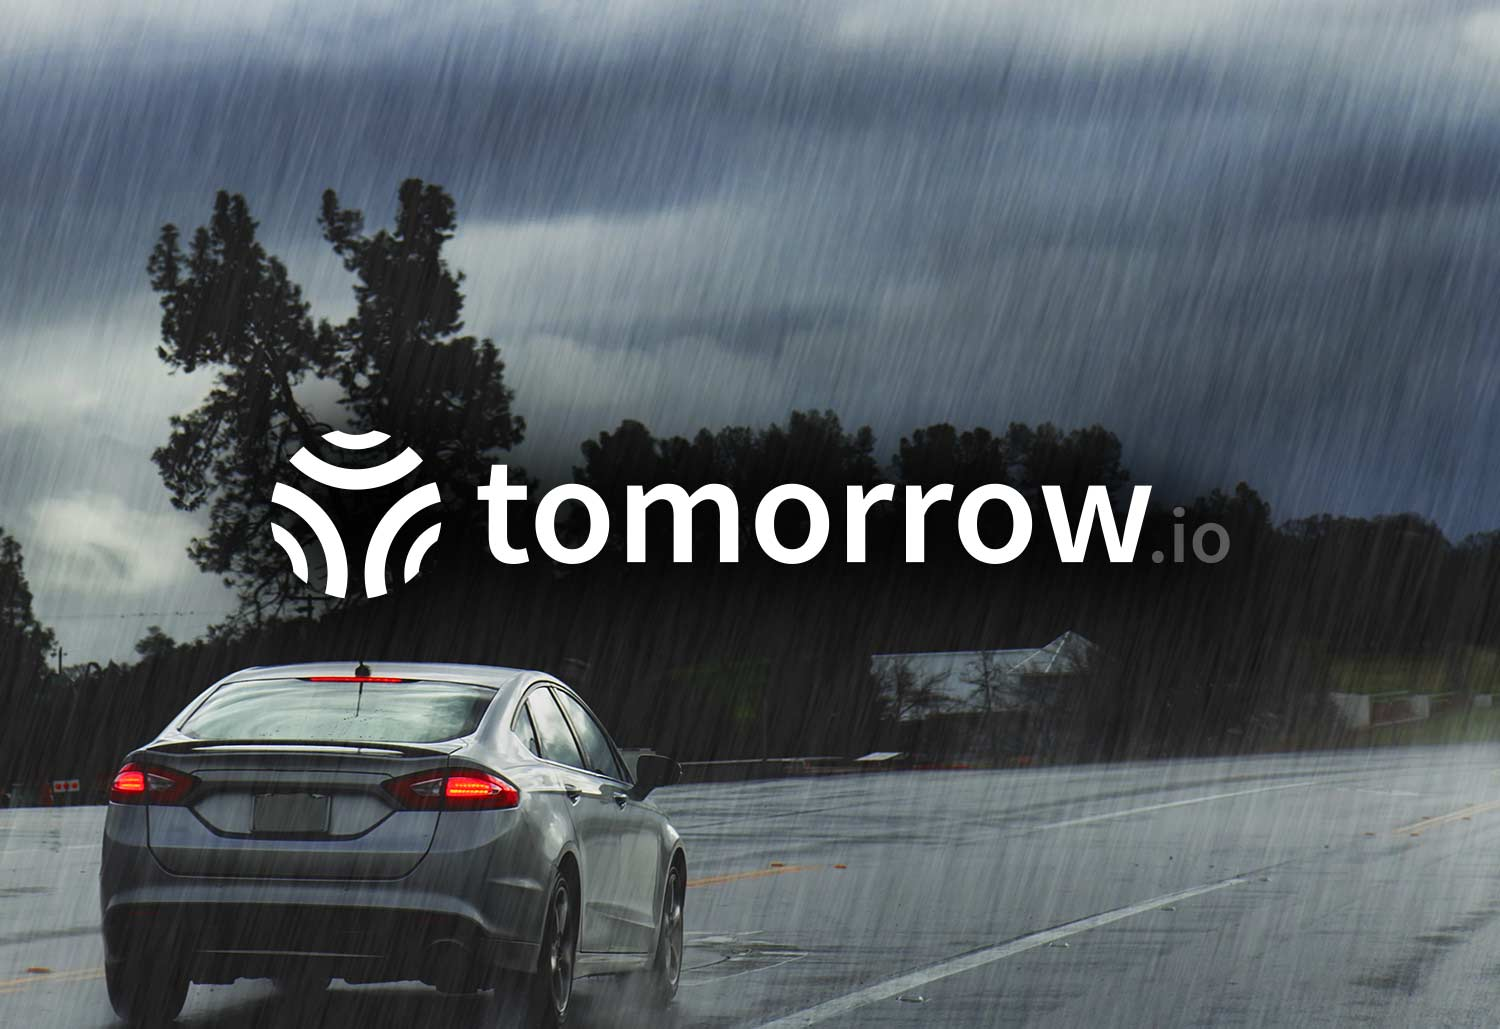 Rekor Systems Announces Data Partnership With Tomorrow.io on Real-Time Weather Conditions and Forecasts